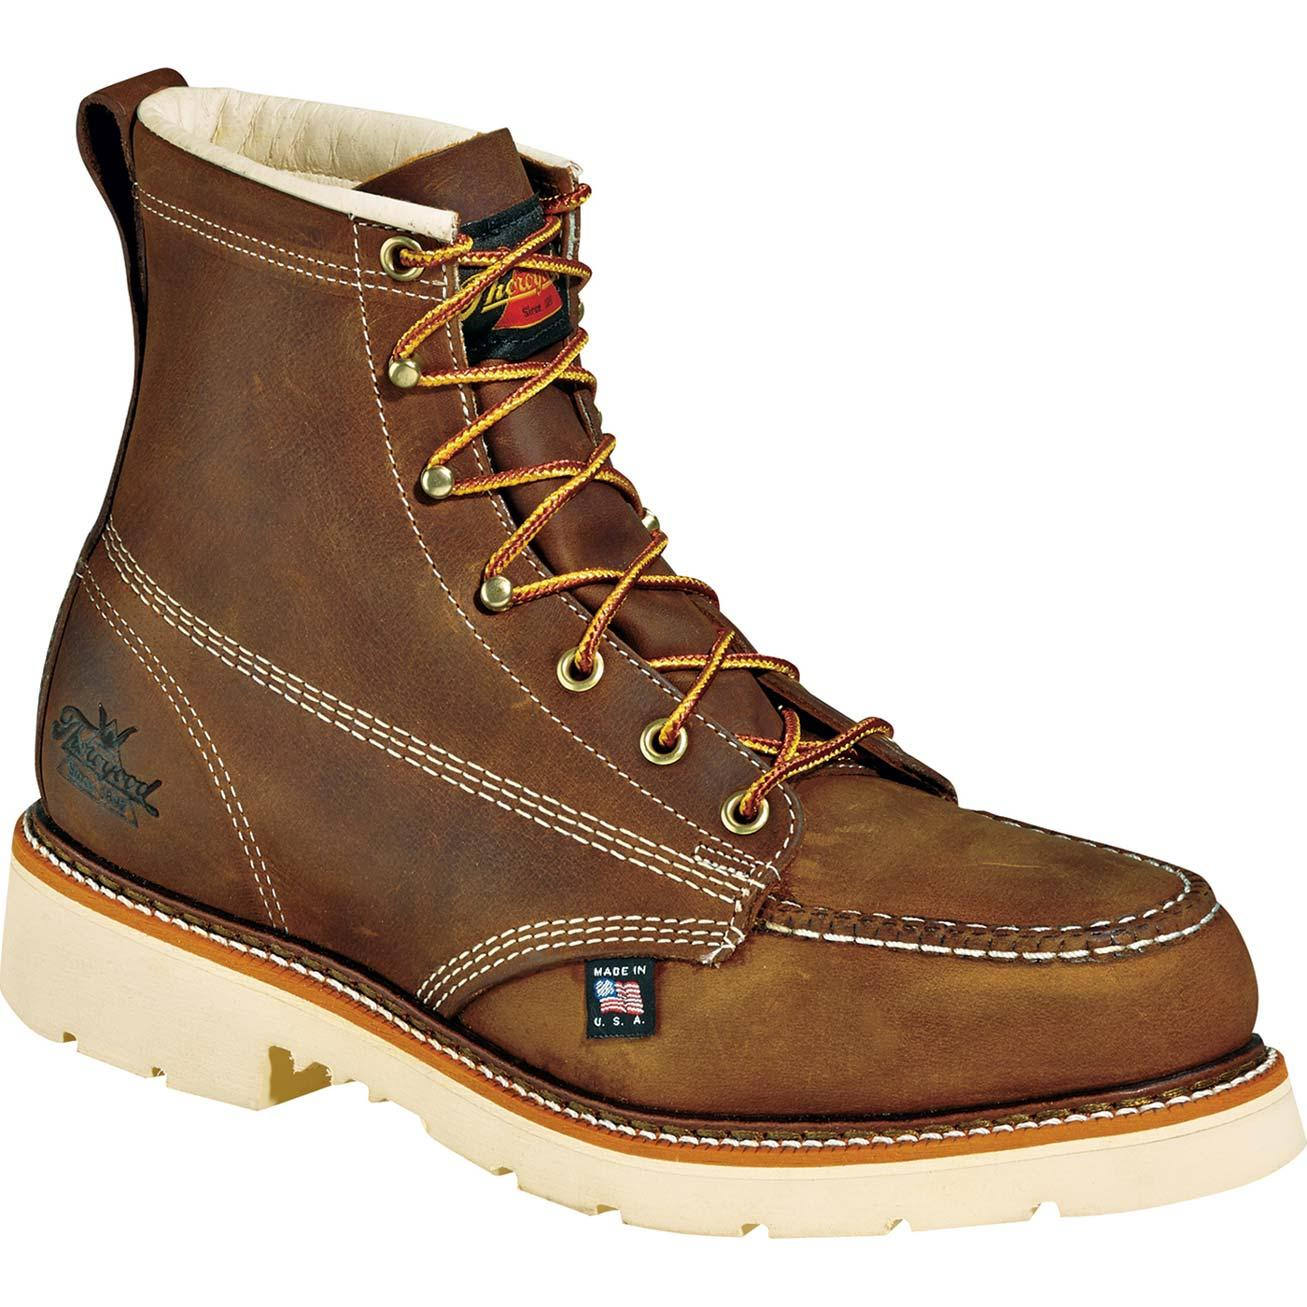 American Made Steel Toe Shoes